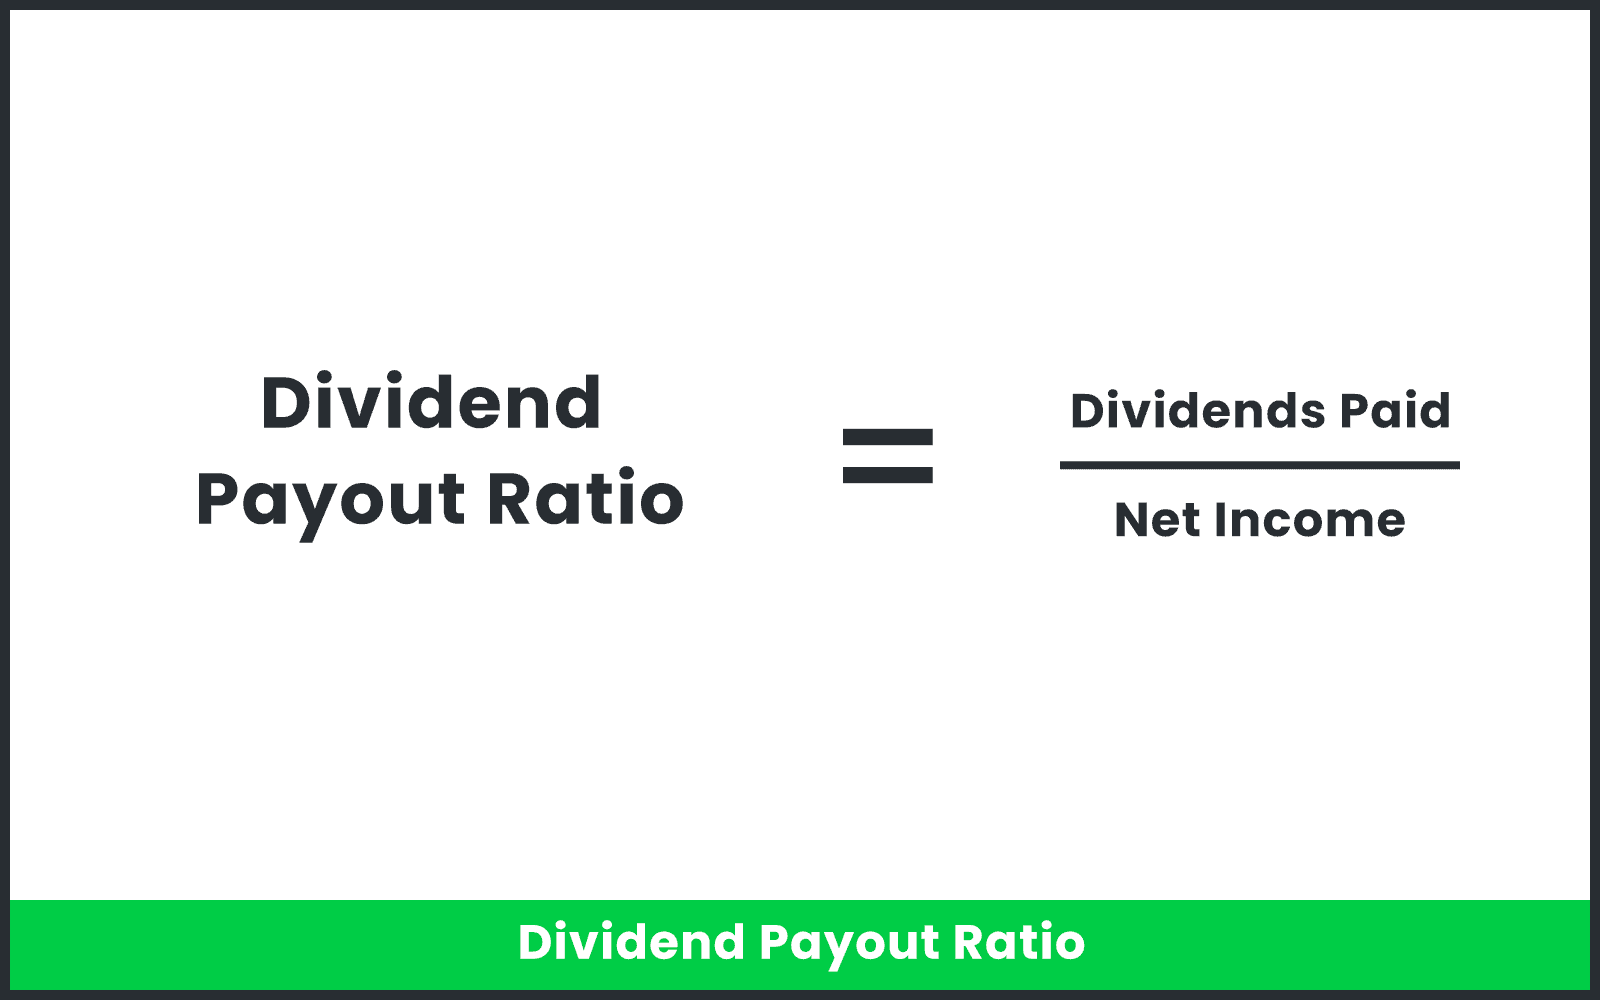 The dividend payout ratio equation.